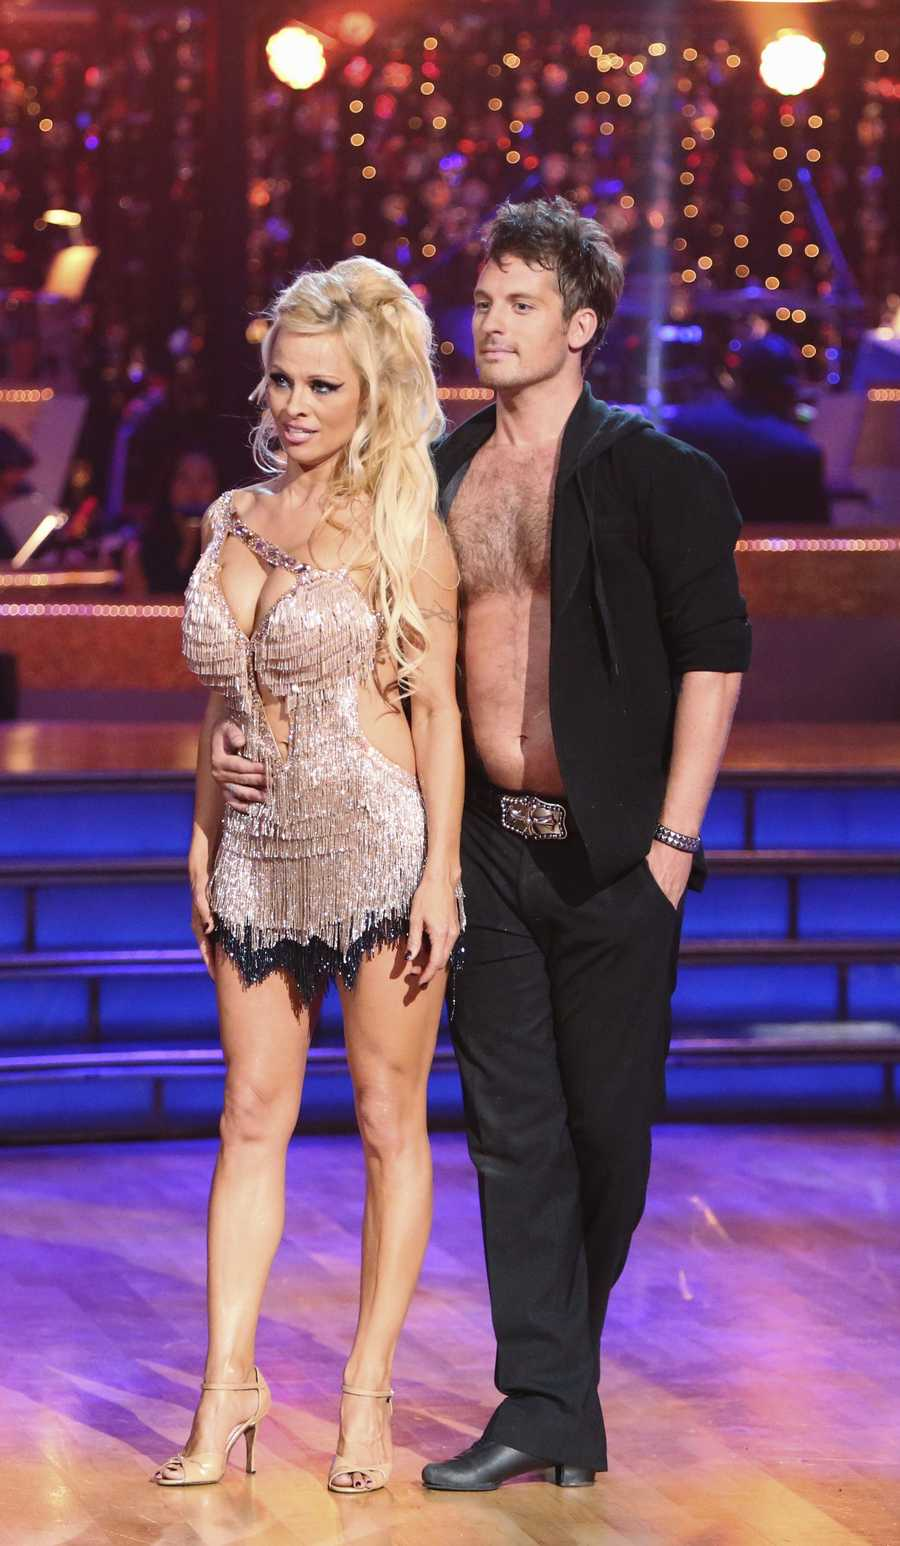 17) Pamela - 628  (Pictured here is Actress Pamela Anderson from Dancing with the Stars)